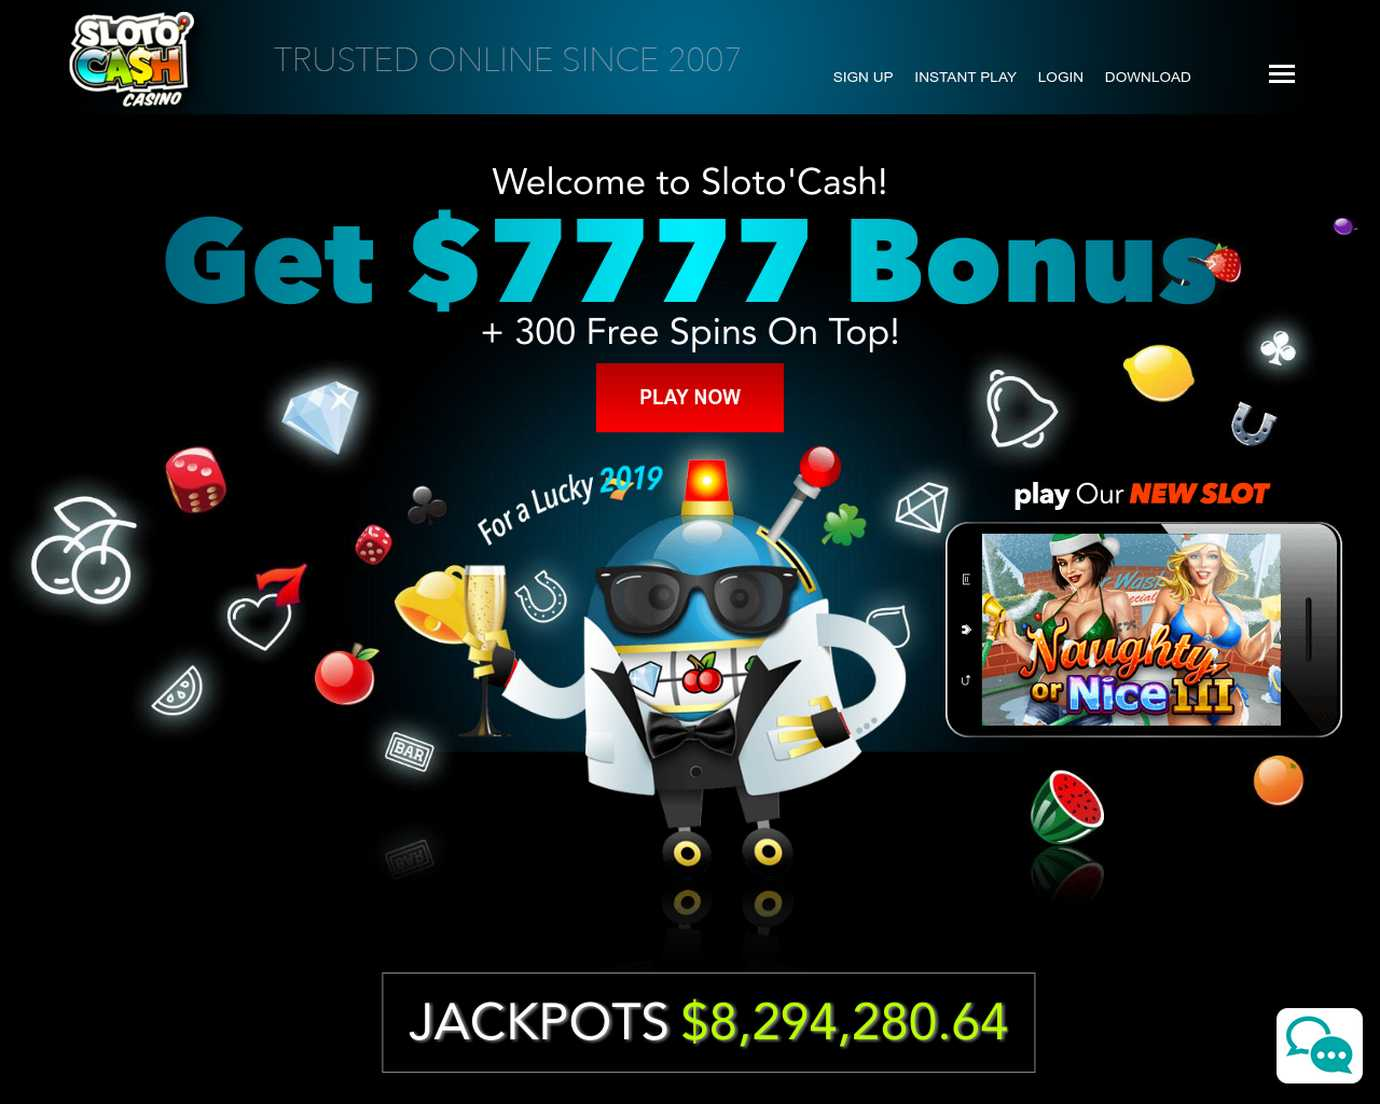 100 free spins on Plentiful Treasures Slot only for depositors at Sloto Cash. US Accepted!